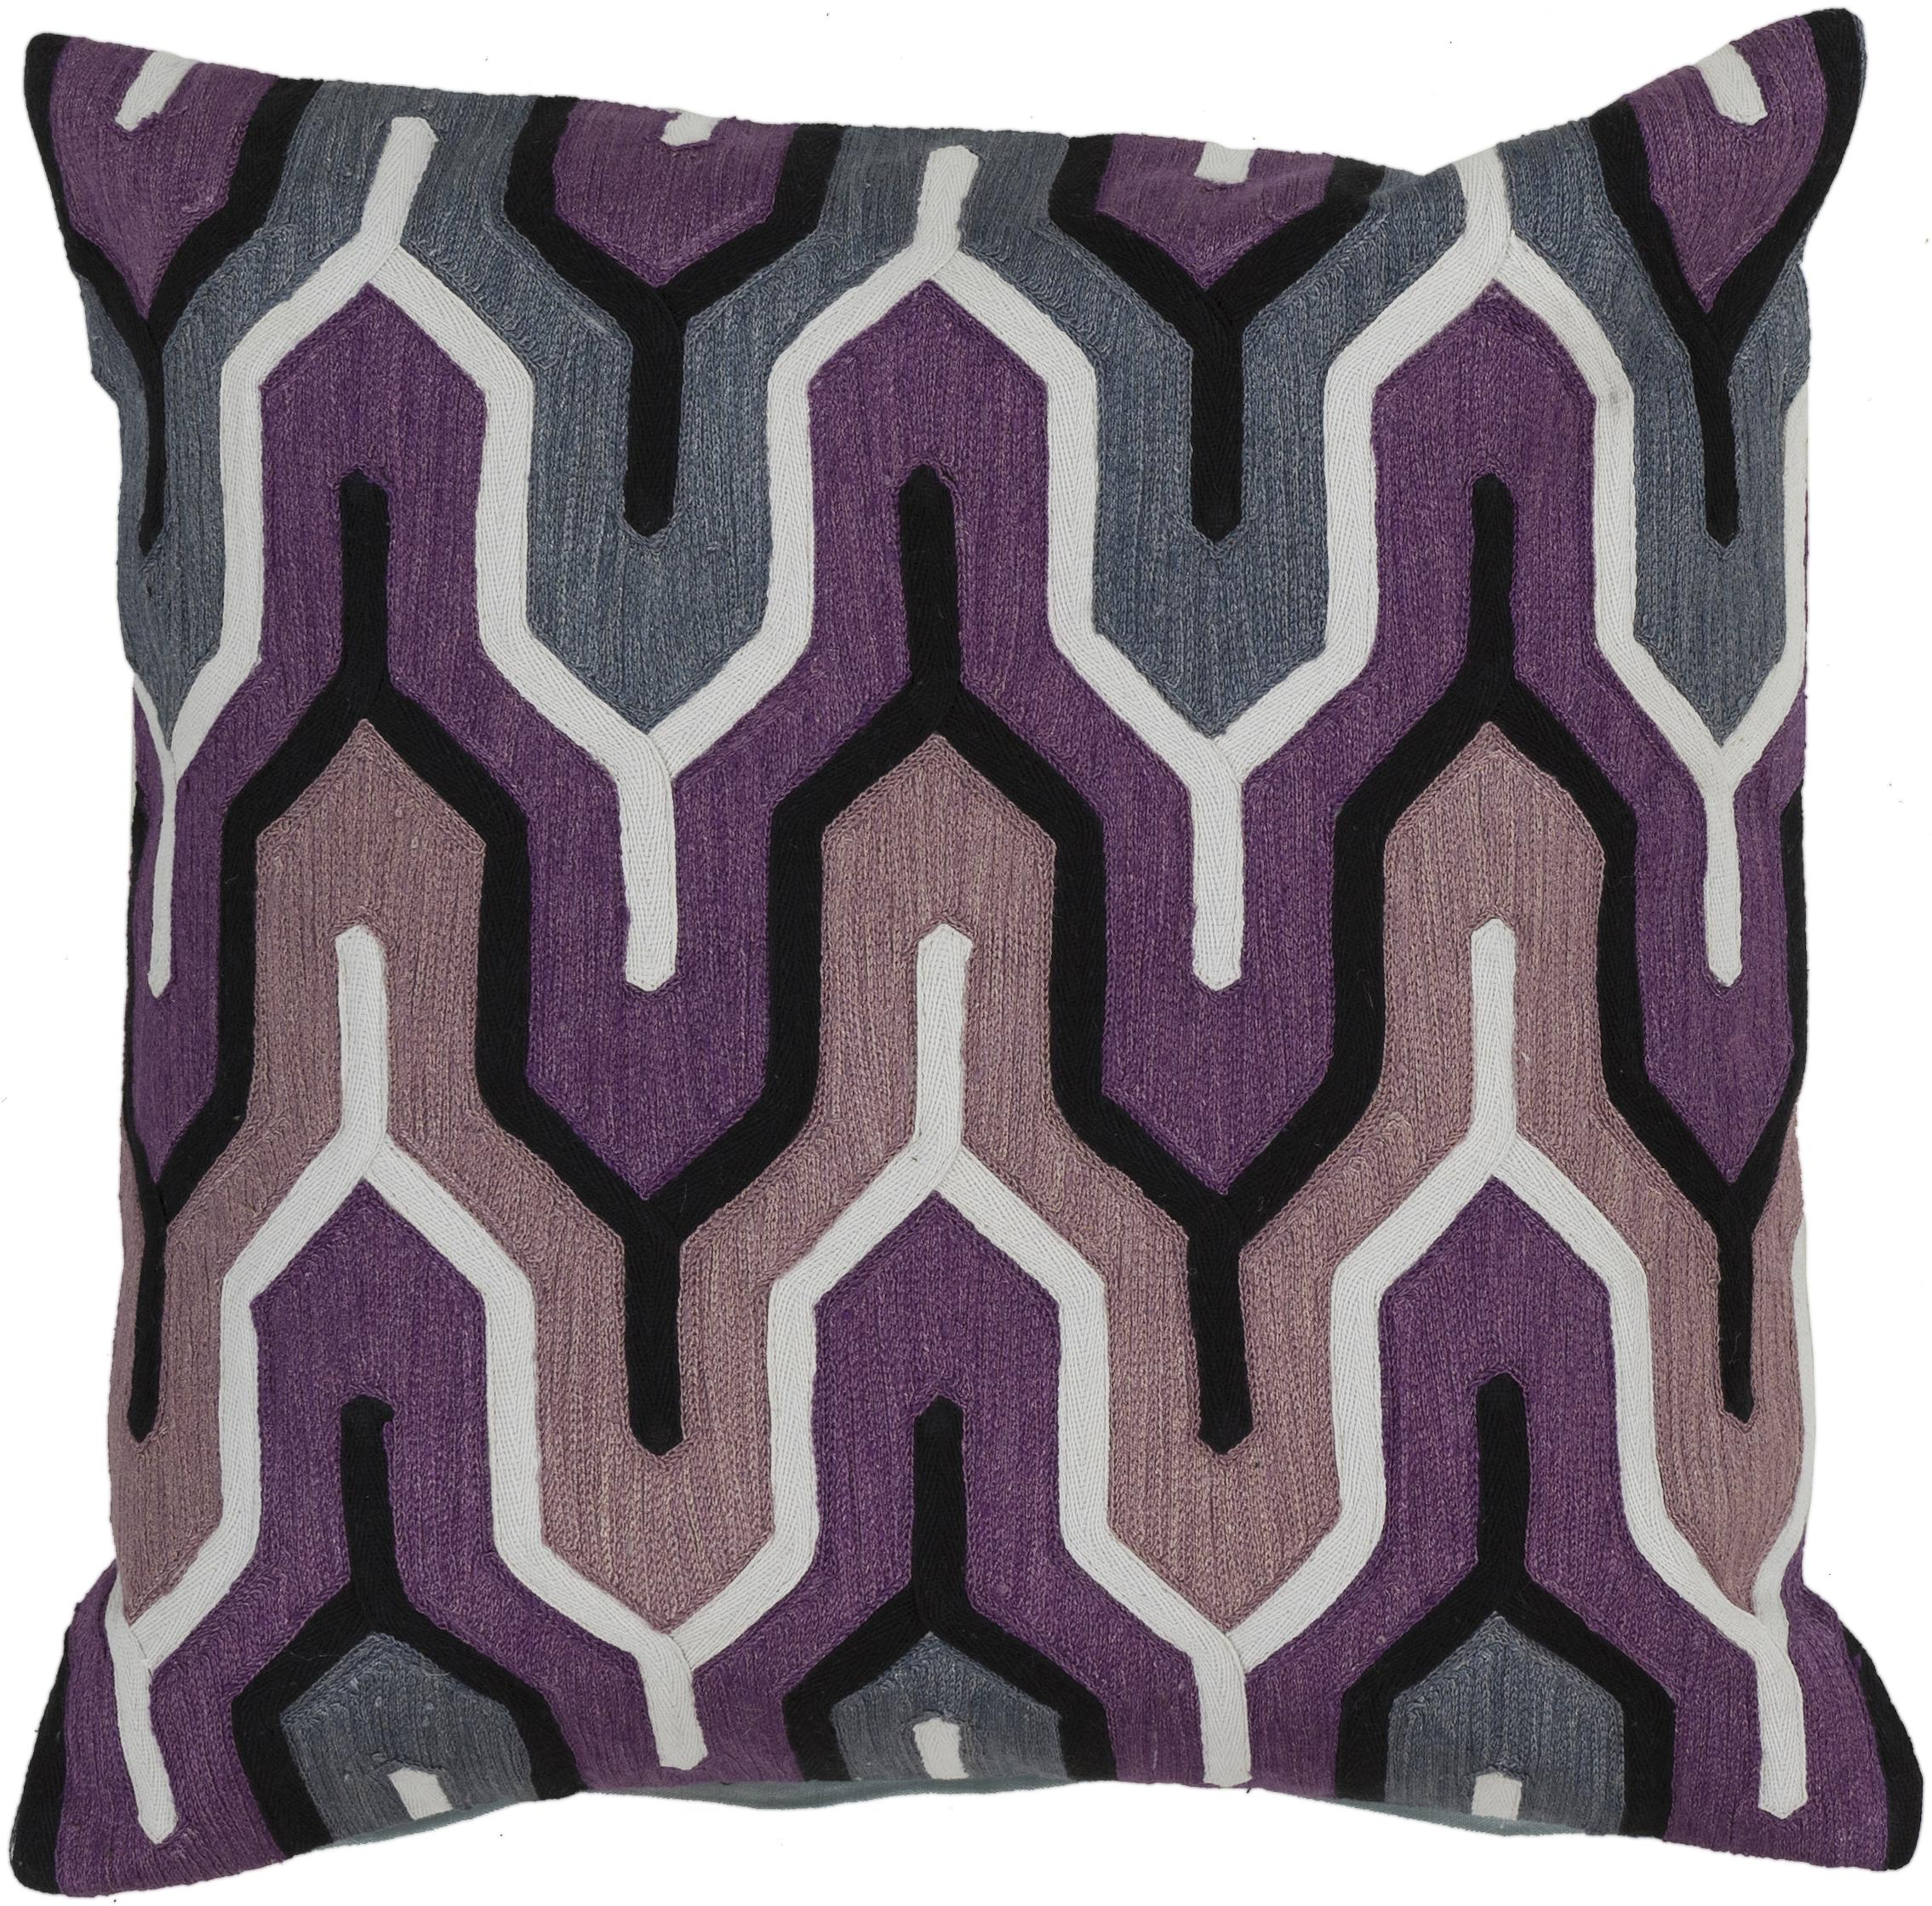 "Surya Rugs Pillows 22"" x 22"" Pillow - Item Number: AR107-2222P"